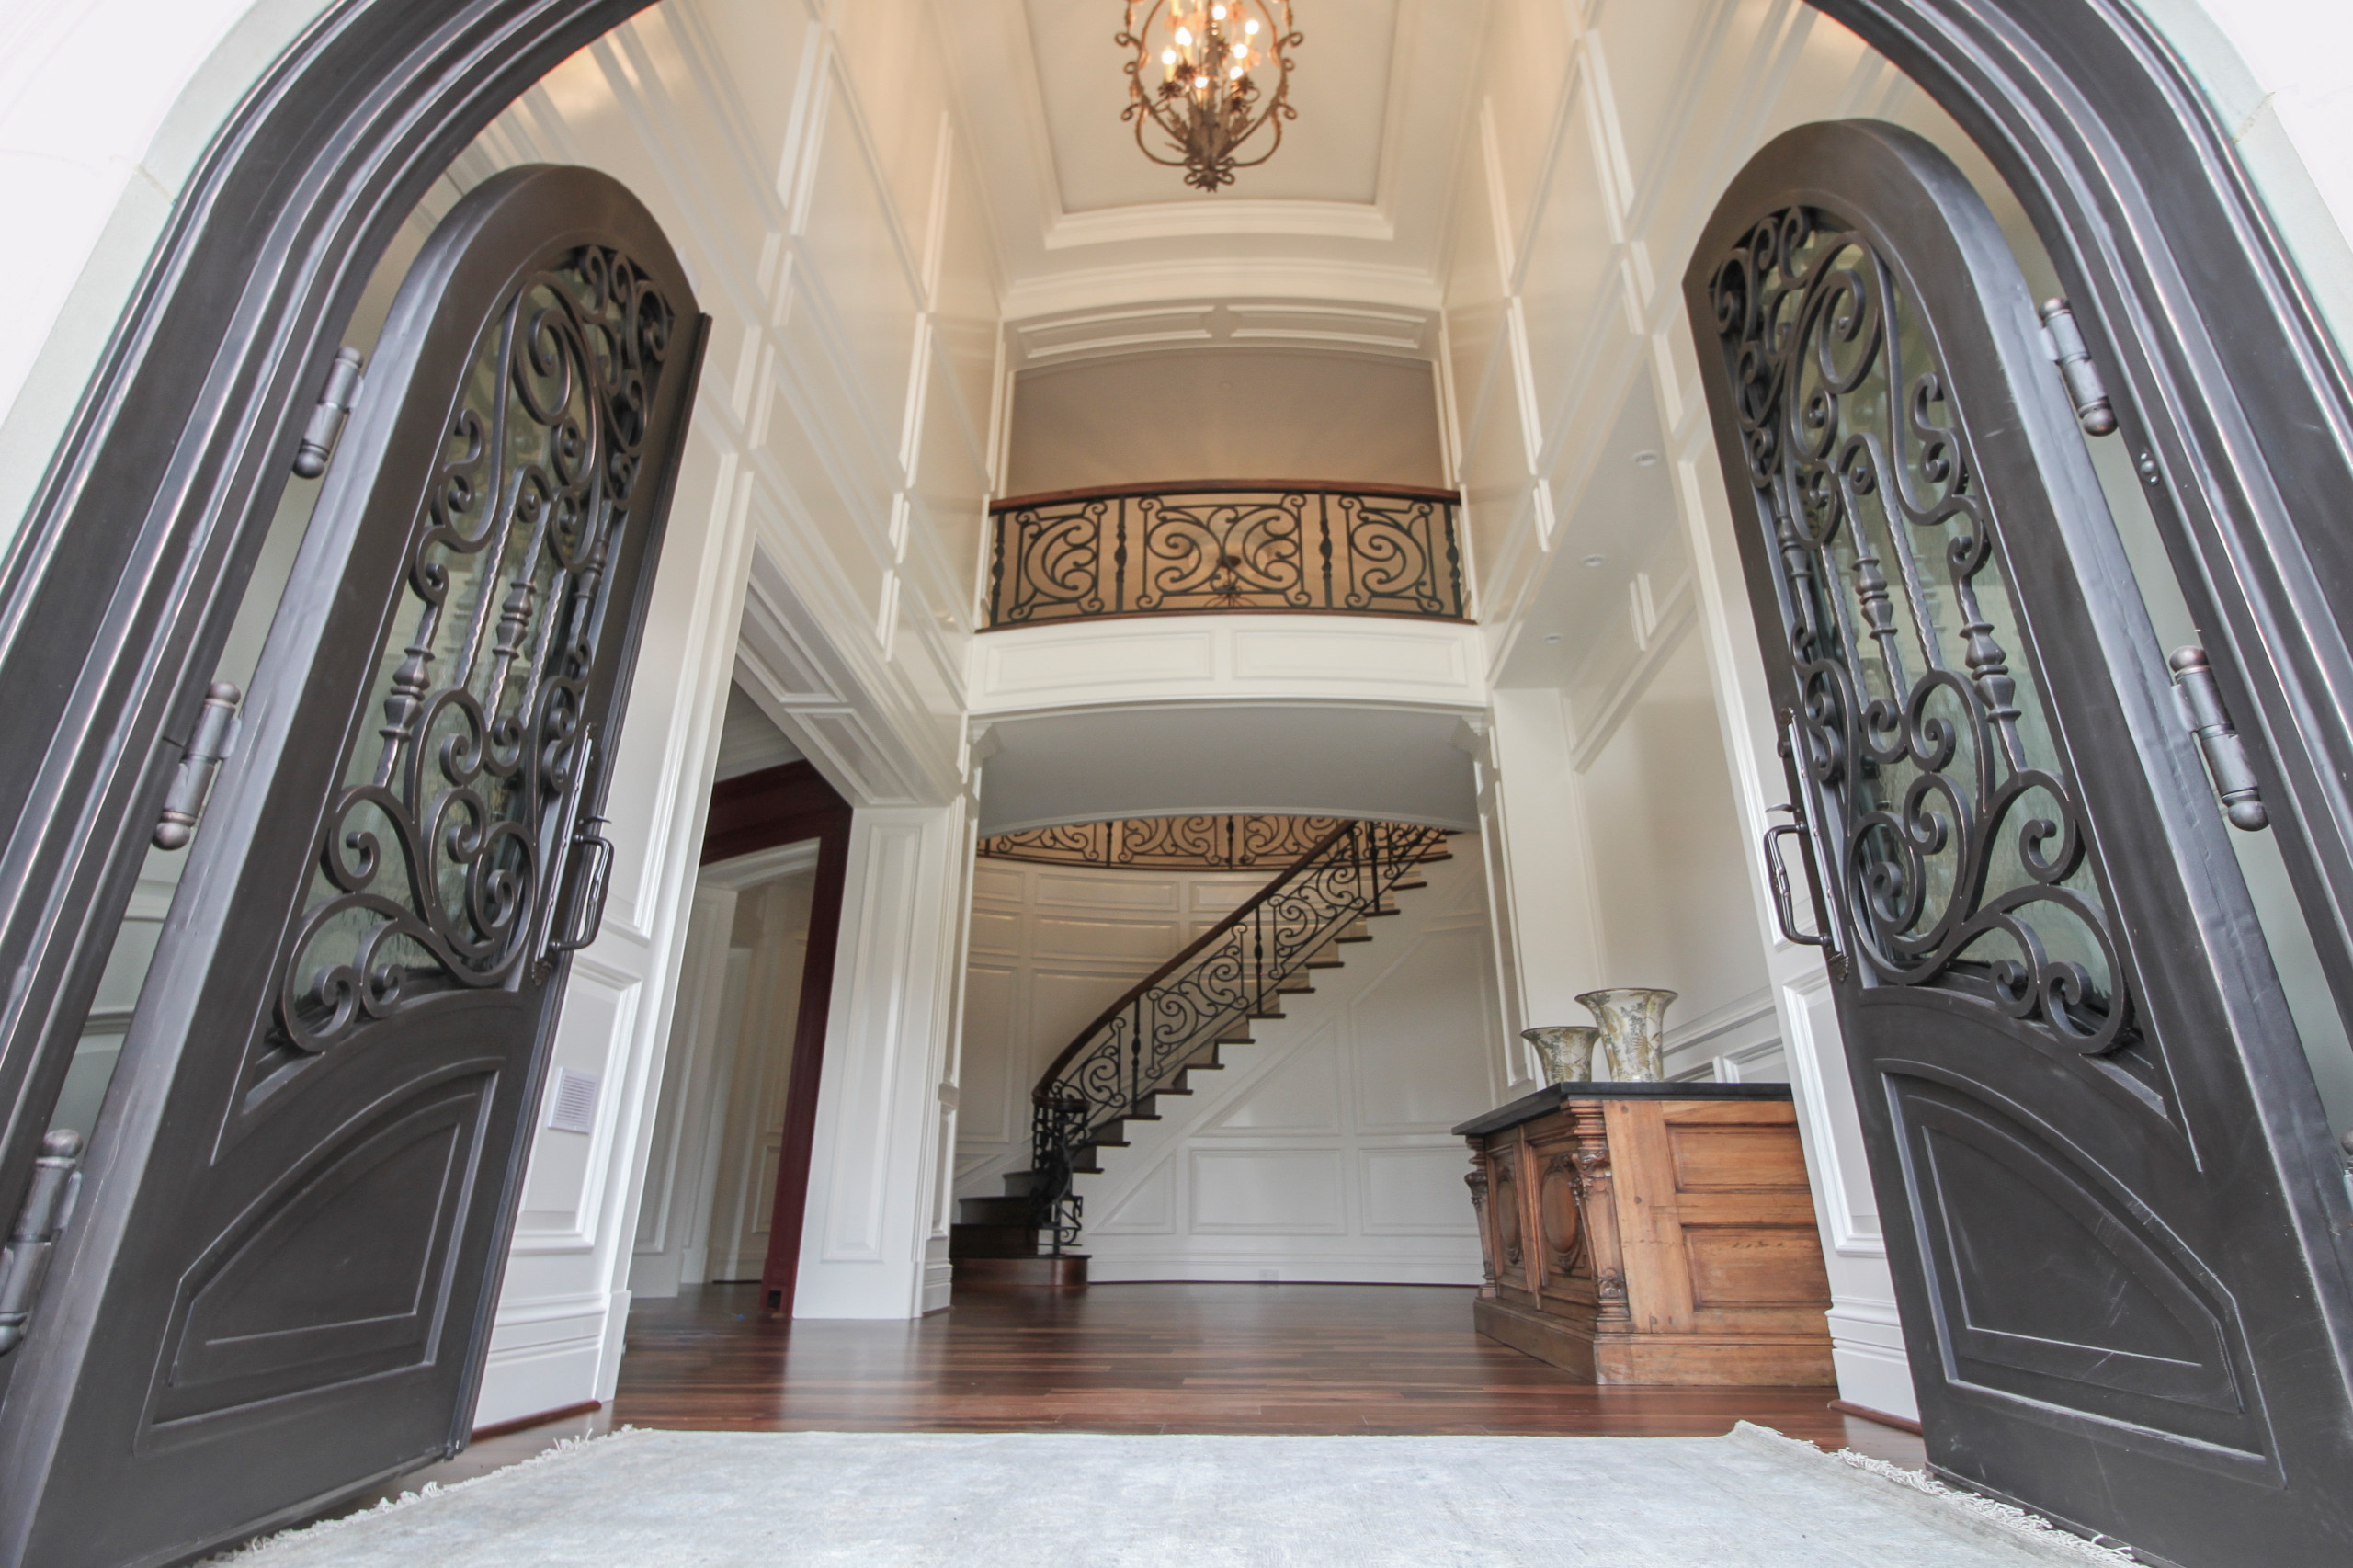 74_Exquisite Circular Stair with Metal Railing Panels, Highland MD 20777